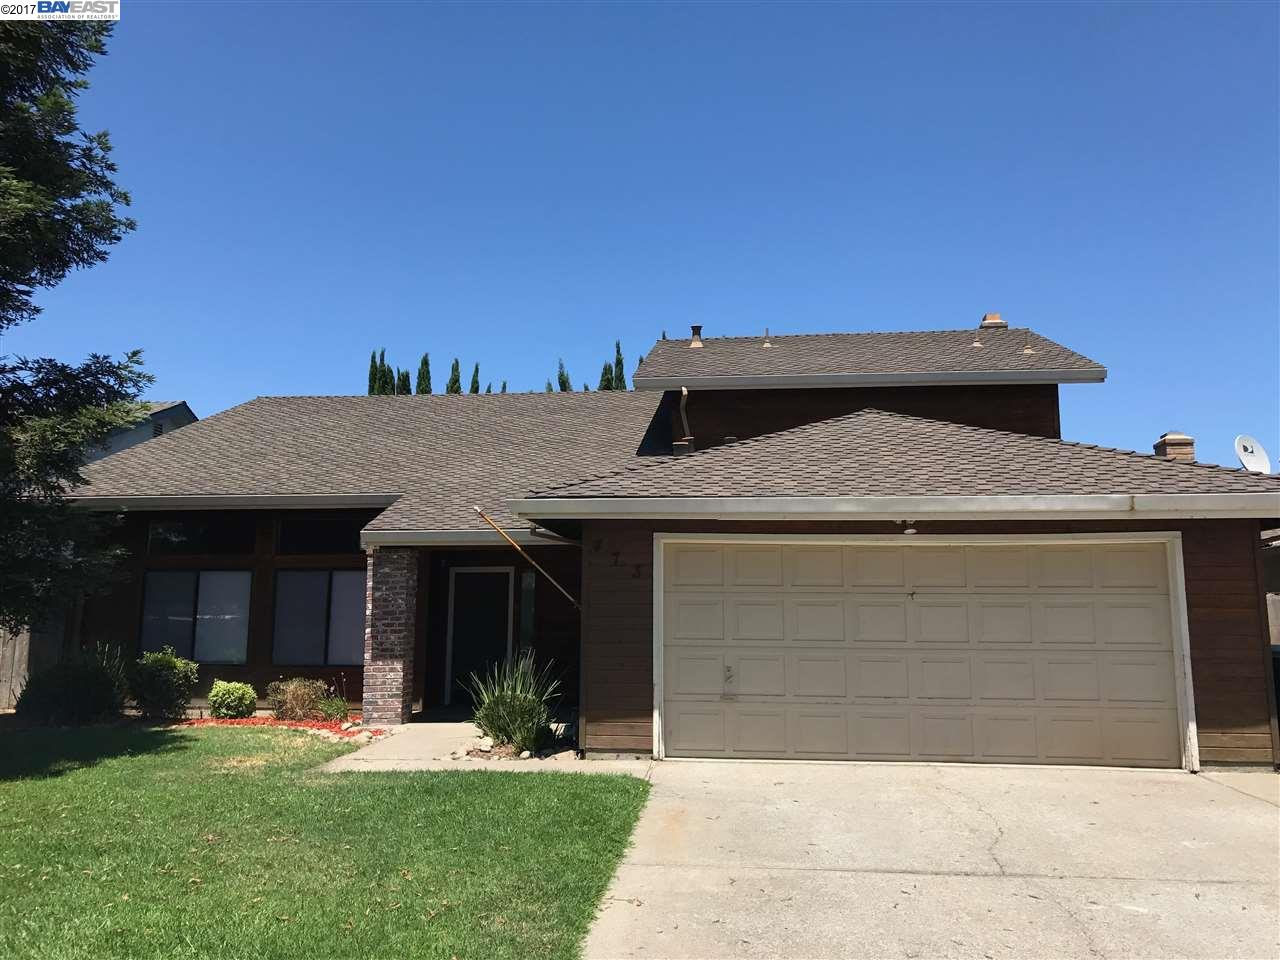 Single Family Home for Sale at 473 Sultana Court Ripon, California 95366 United States